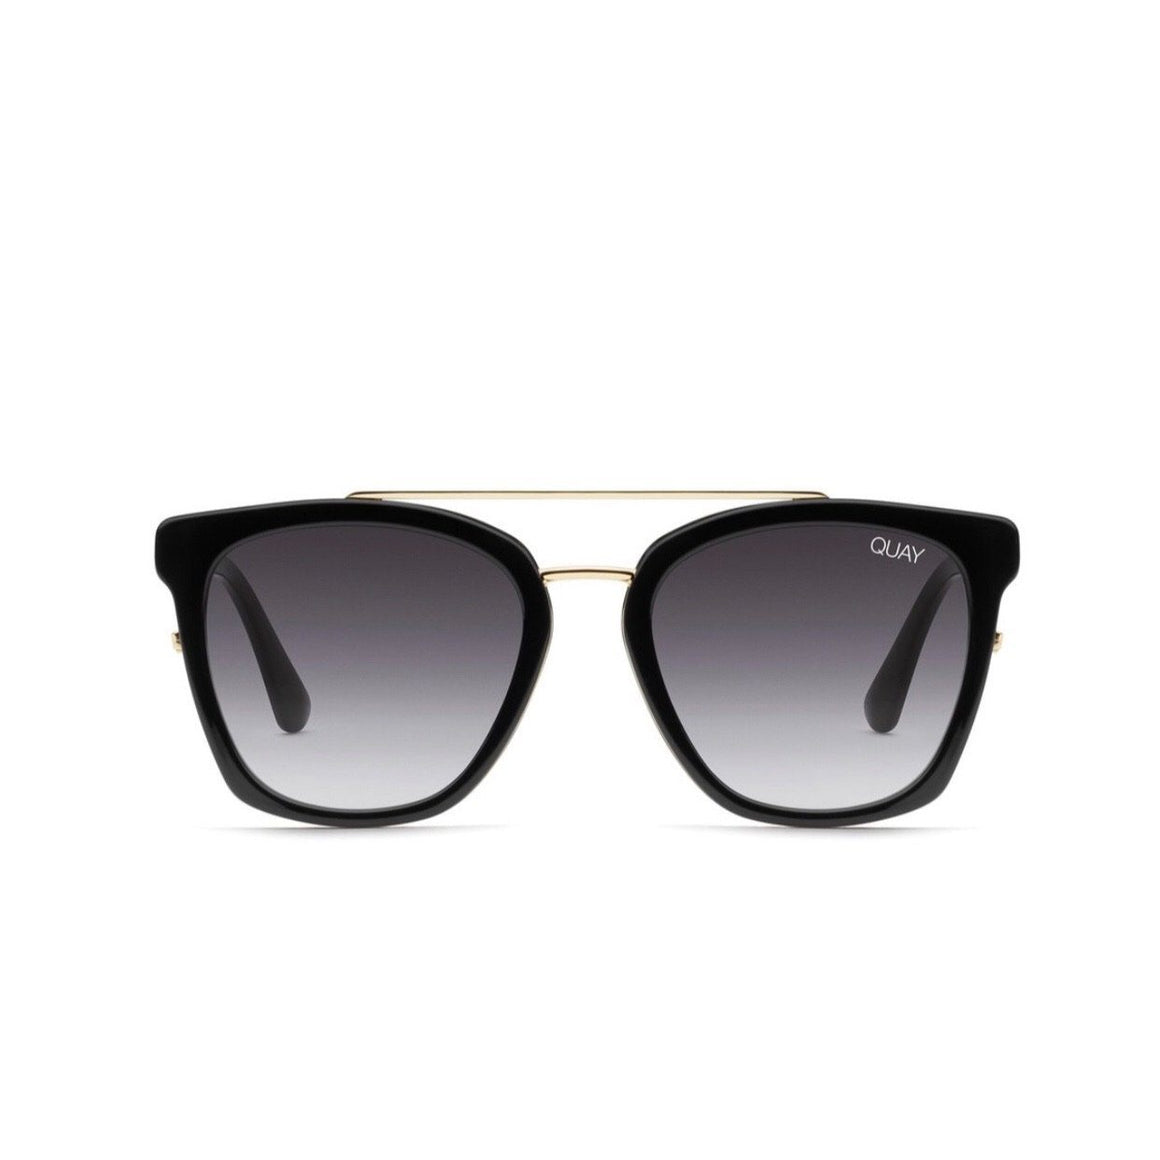 Quay X Chrissy - Sweet Dreams Sunglasses - Black / Smoke Sunglasses Quay